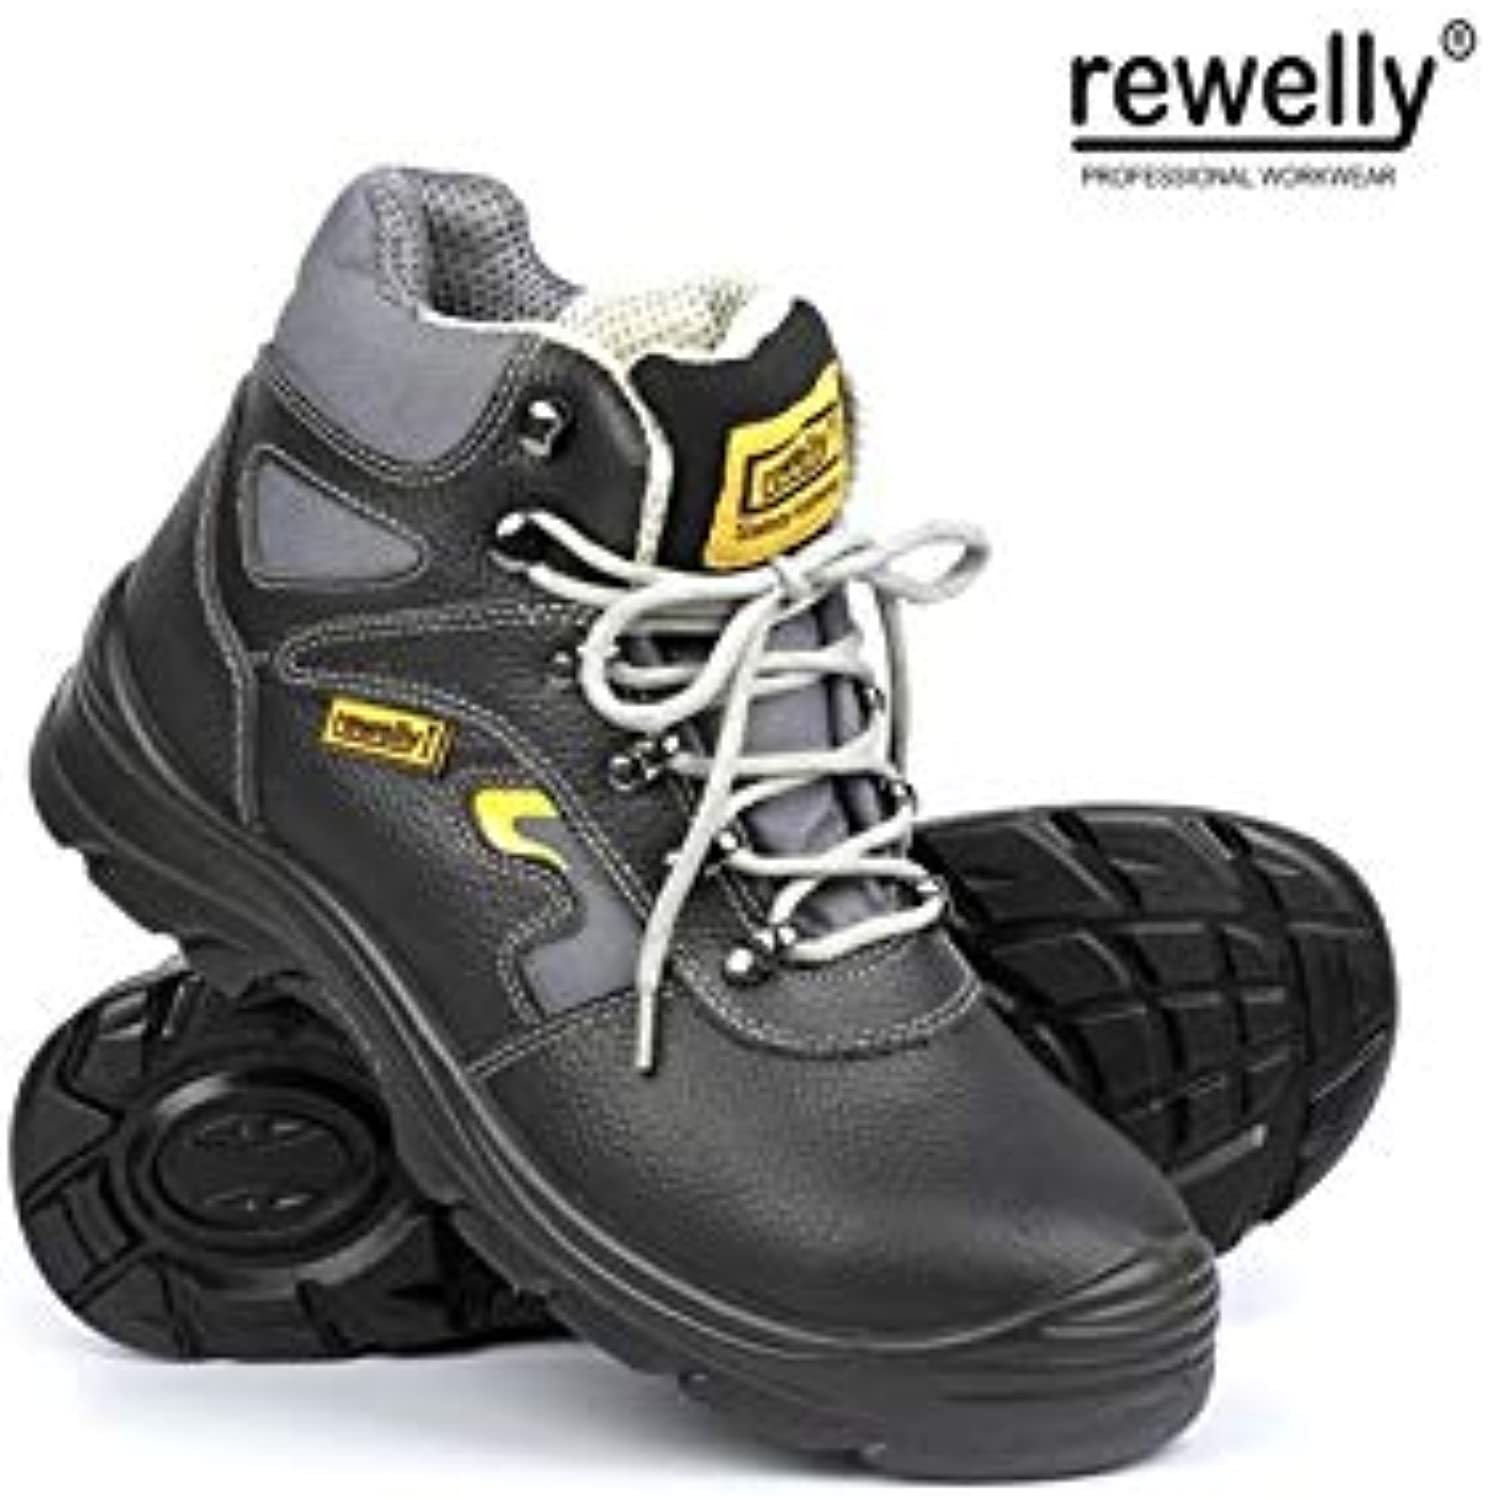 HIGH CUT SHOES PLAYER LIGHT REWELLY S3 - Black 51